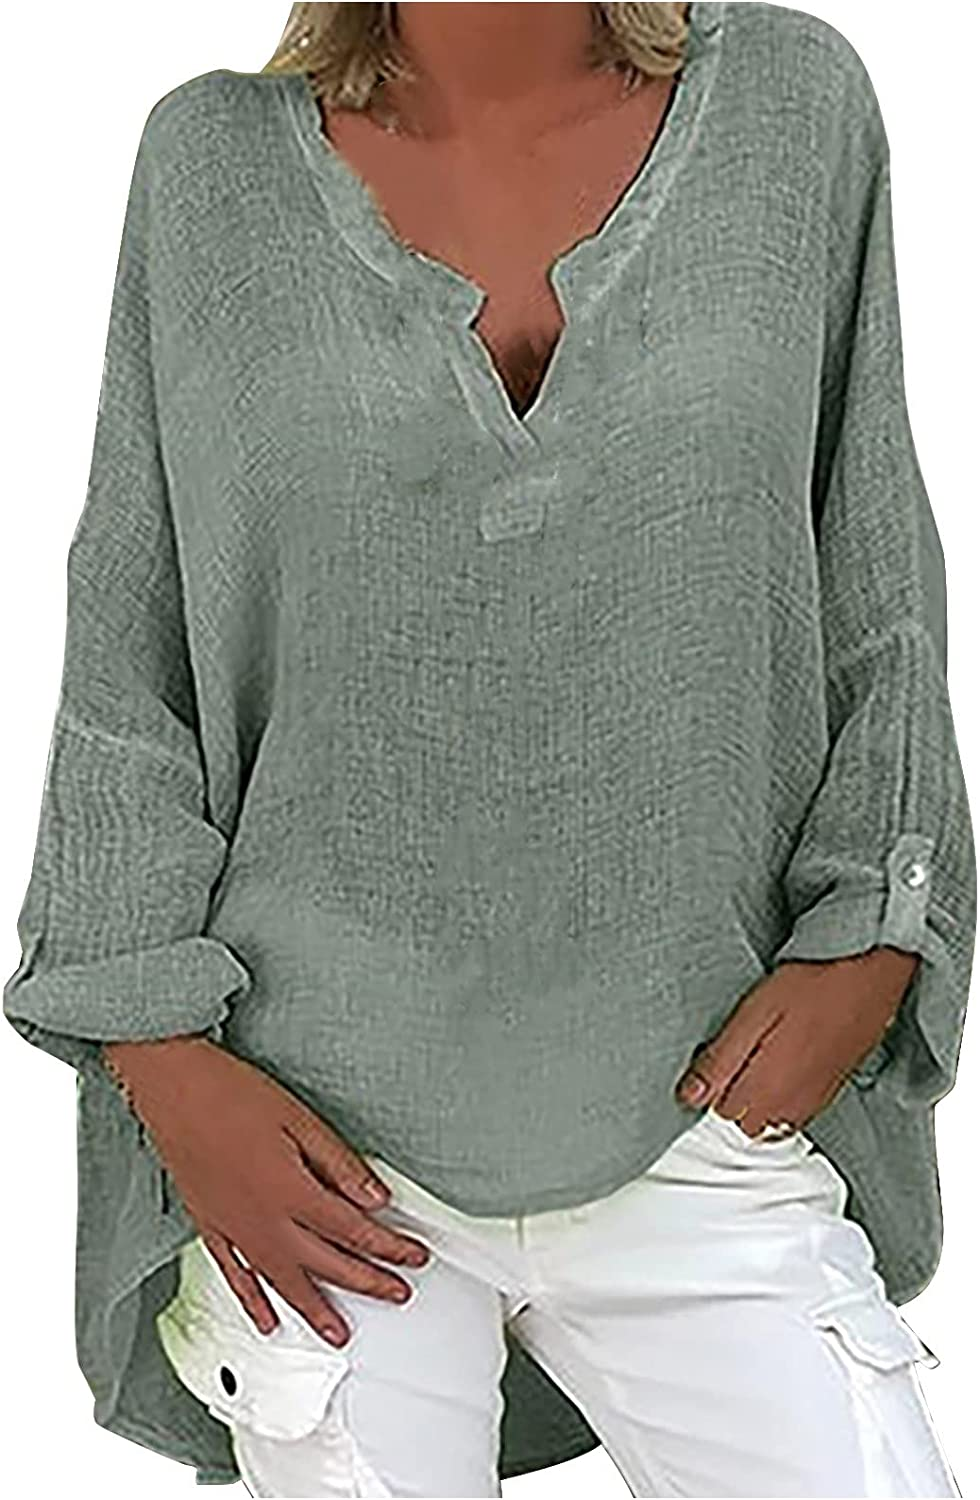 Womens Tops Dressy Casual Trendy Plus Size V-Neck Long Sleeve T-Shirts Solid Color Loose Tunic Tees Daily Soft Blouses